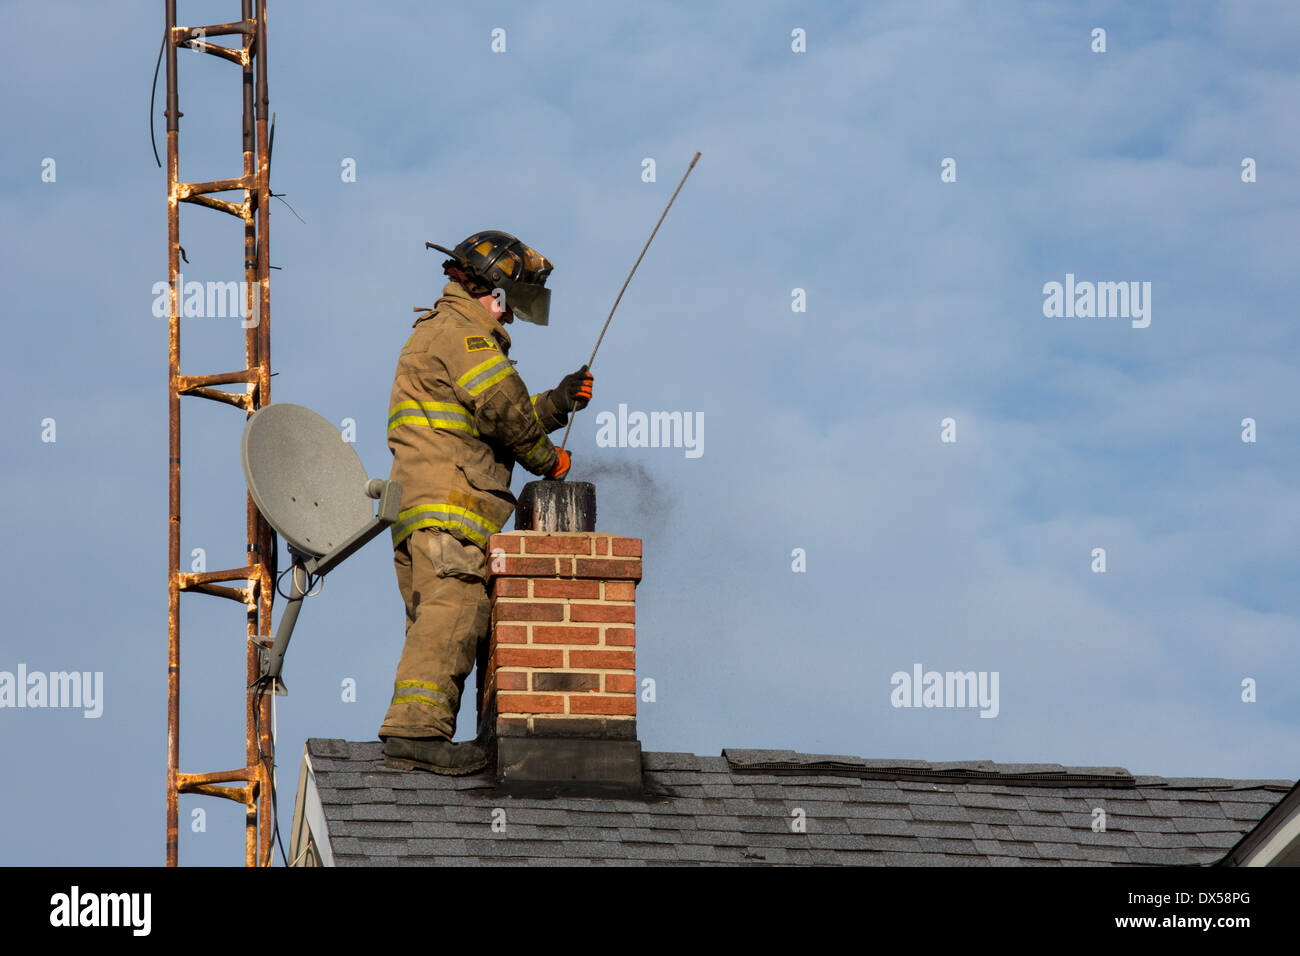 Kenton, Ohio - A firefighter fights a chimney fire in a rural house. - Stock Image